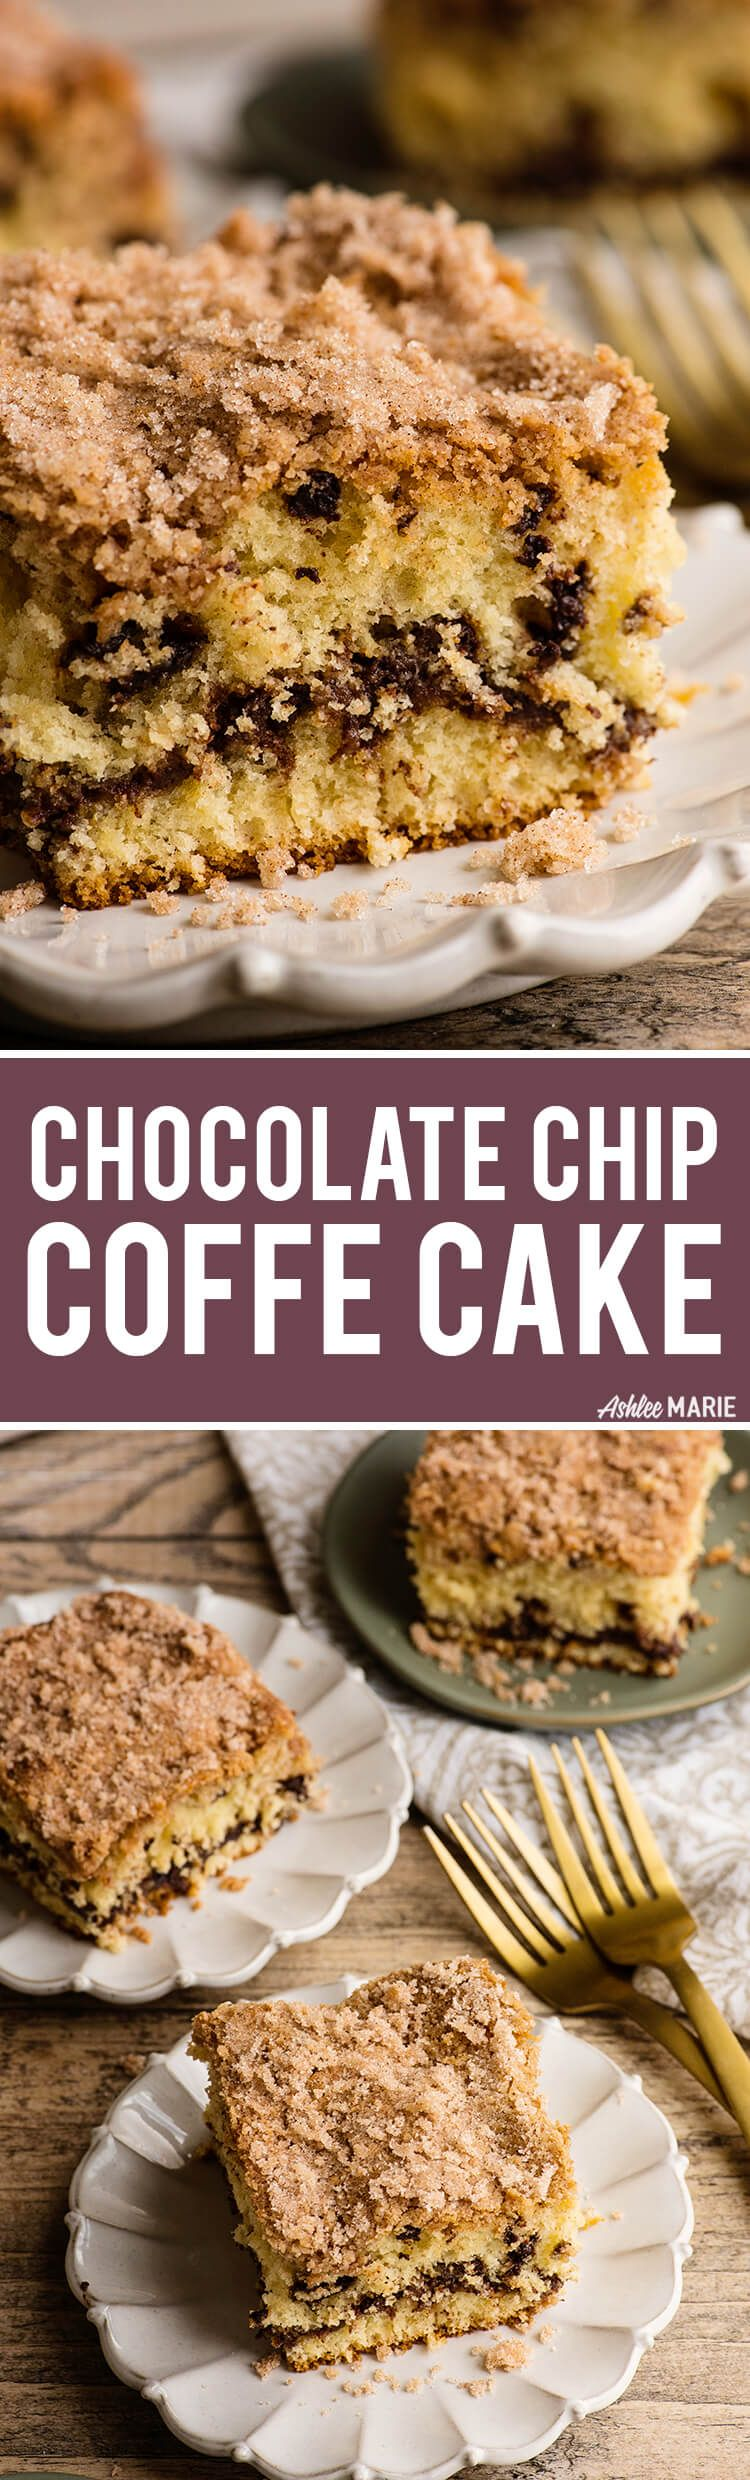 This Chocolate Chip Coffee Cake is made with sour cream to